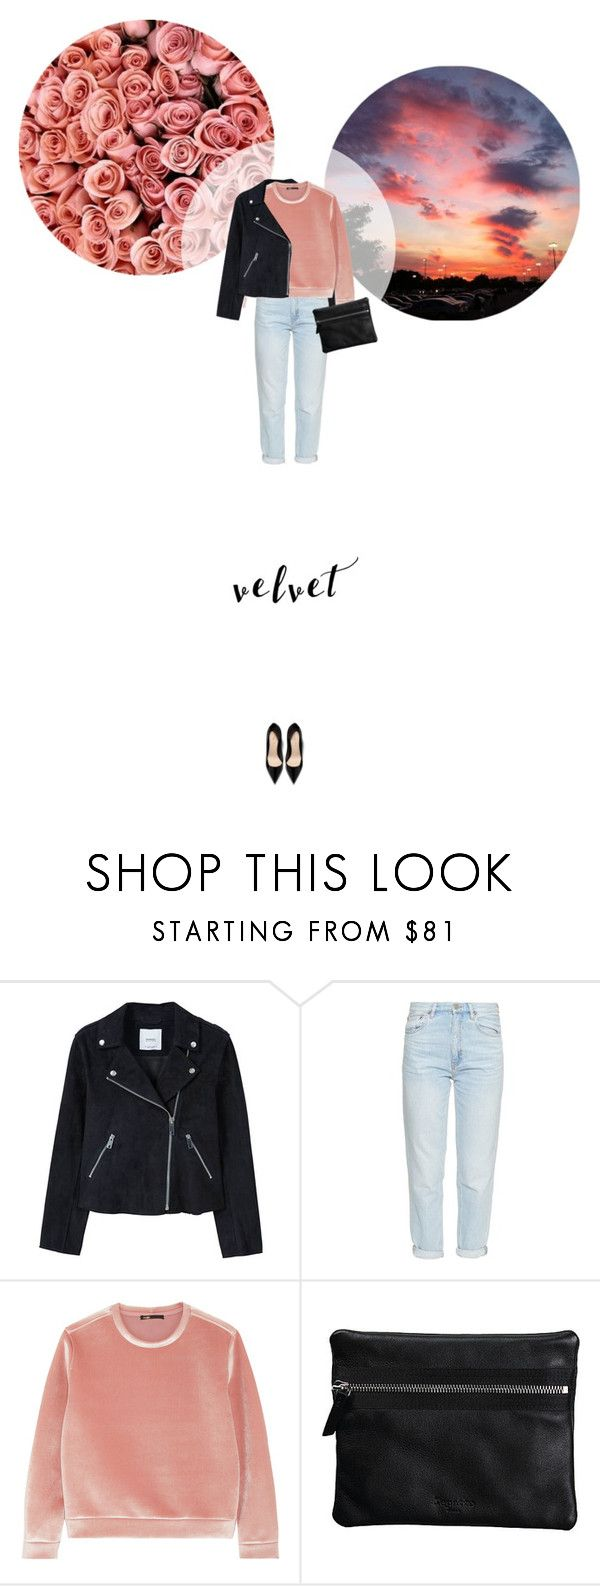 // 1328. Crushing on Velvet. by lilymcenvy on Polyvore featuring Maje, MANGO, M.i.h Jeans, Repetto, B. Ella, Gucci and velvet